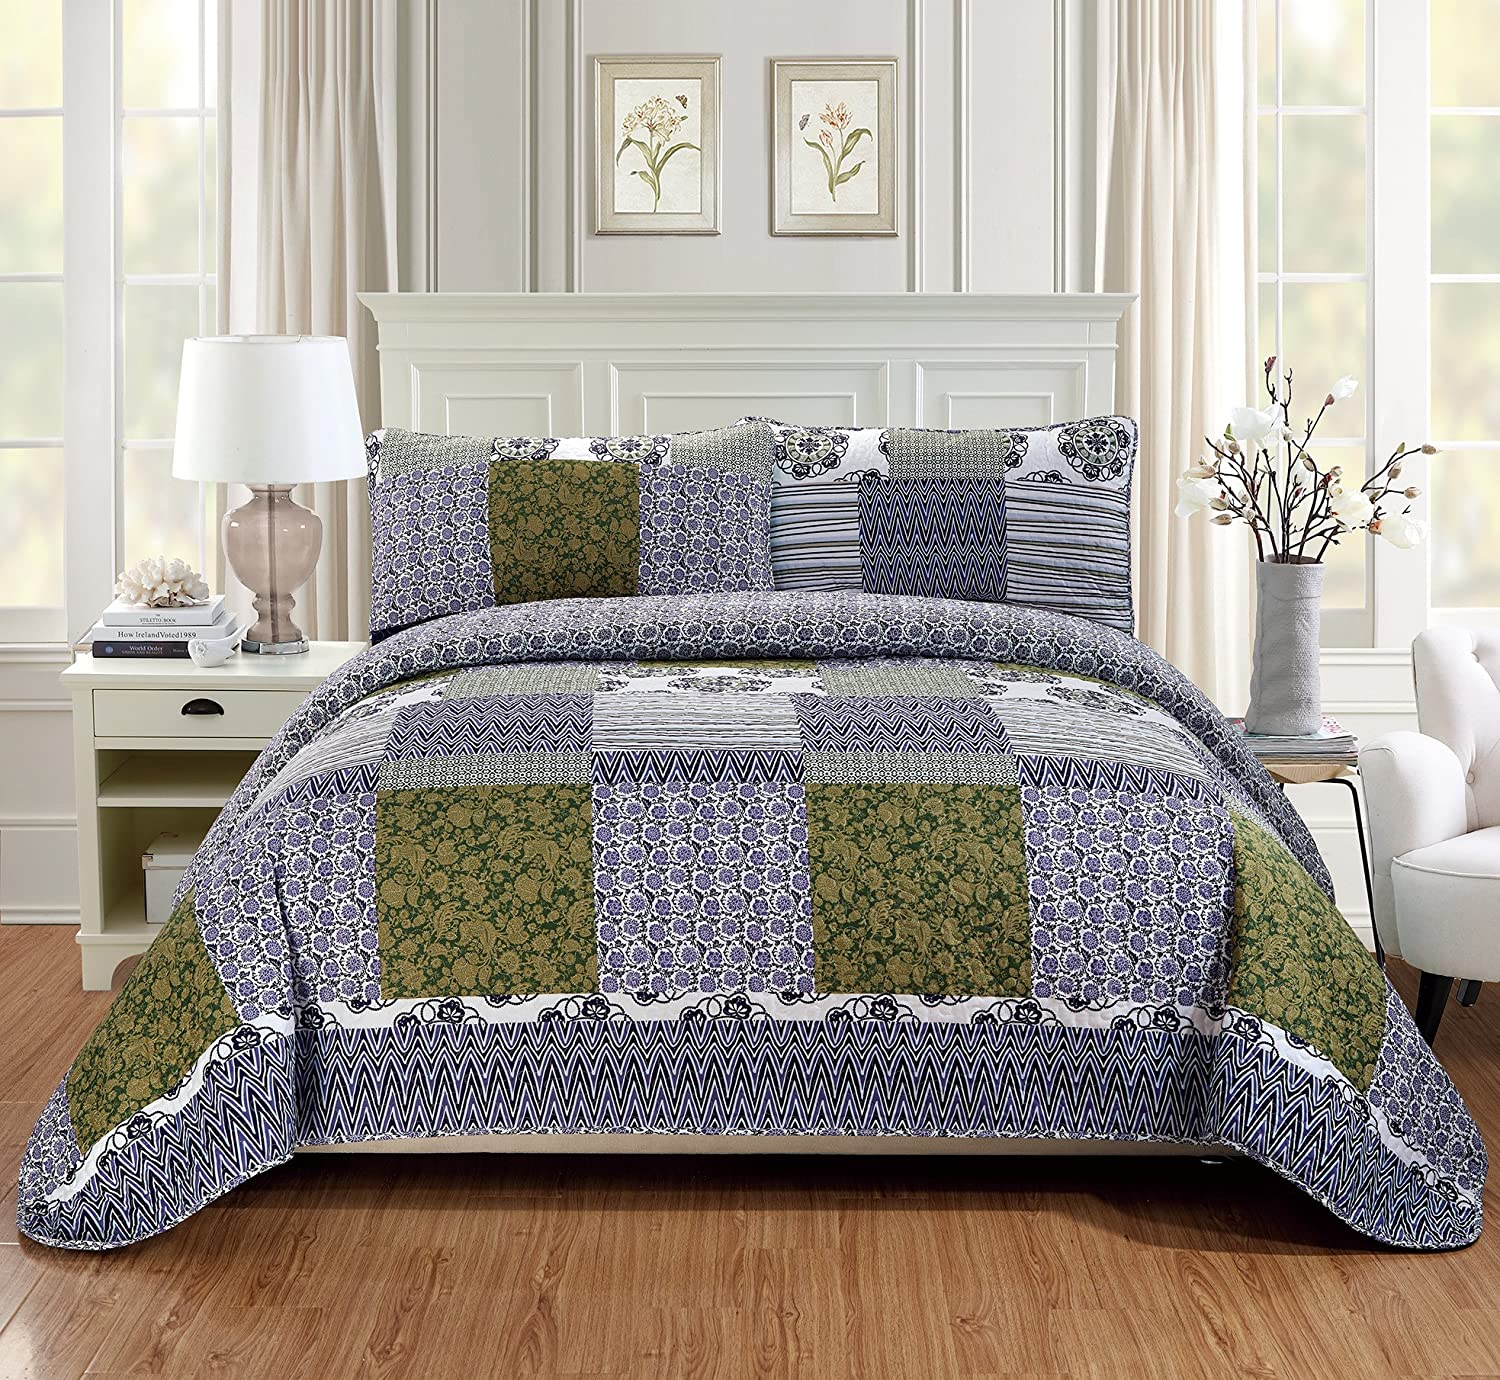 Fancy Linen 2pc Twin/Twin Extra Long Quilt Bedspread Set Over Size Bed Cover Squares Floral Stripped Zig Zag Green Purple Blue White New